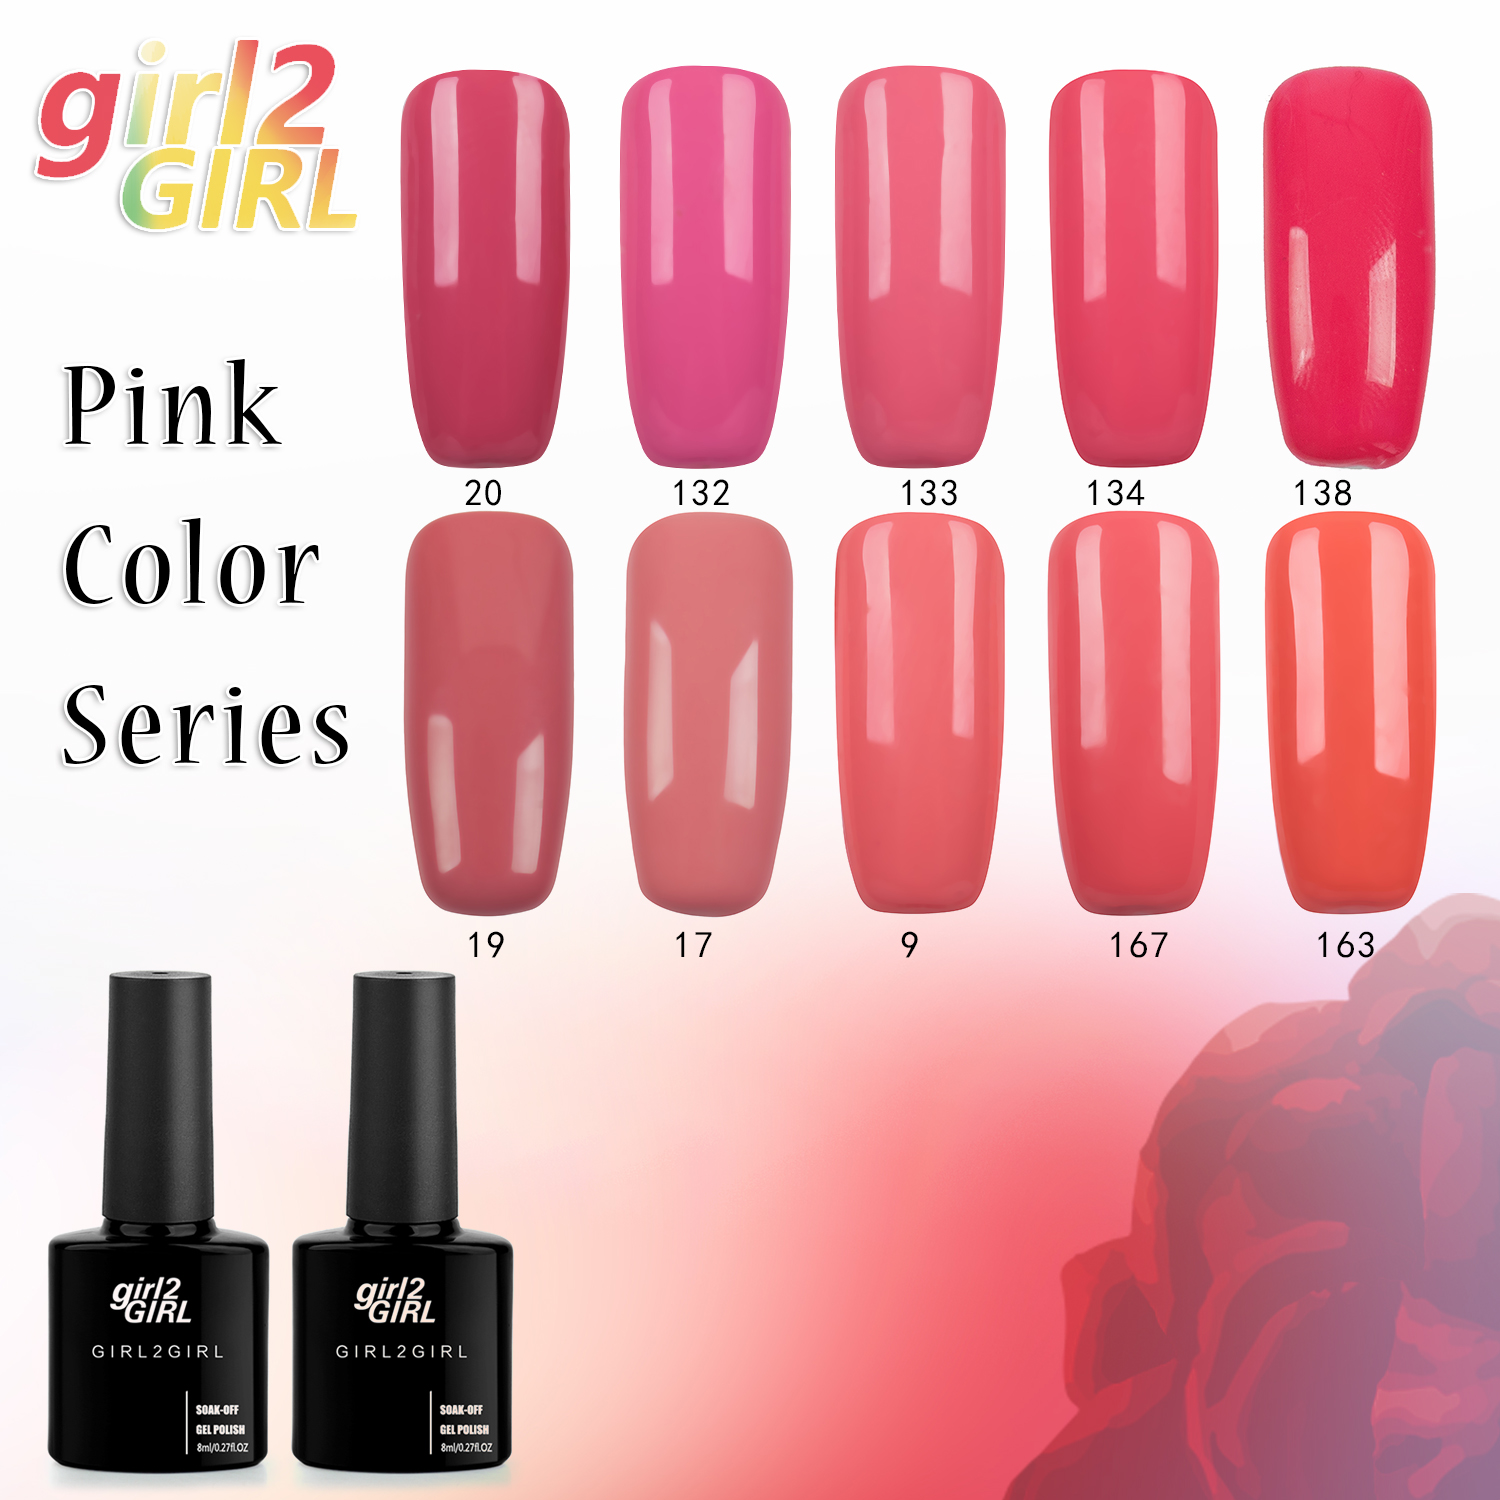 girl2GIRL UV Nail Polish Gel varnish 280 Beauty Colors High Quality Long-lasting 8 ML Soak-off  Pink Set